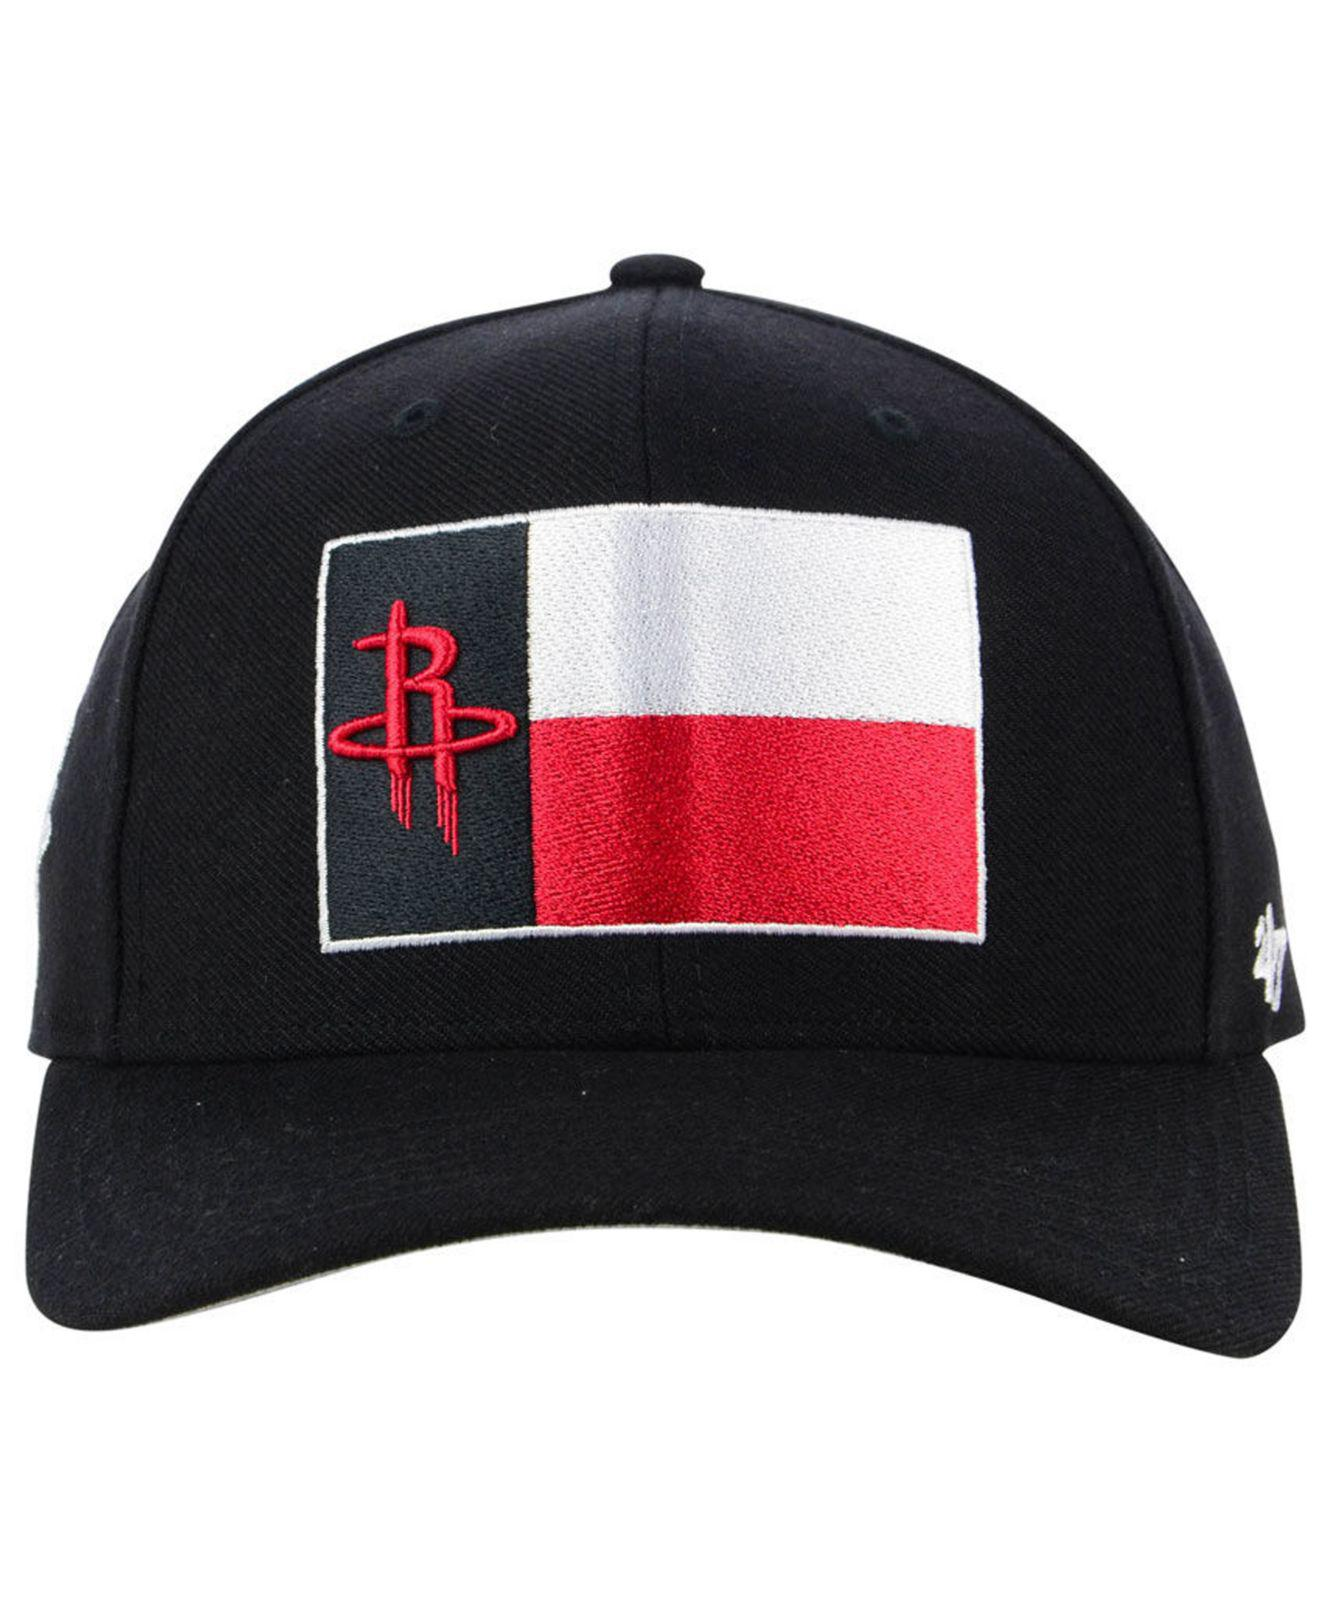 newest 9d3e3 27dc5 ... sale lyst 47 brand houston rockets all region mvp cap in black for men  fdf14 d335e